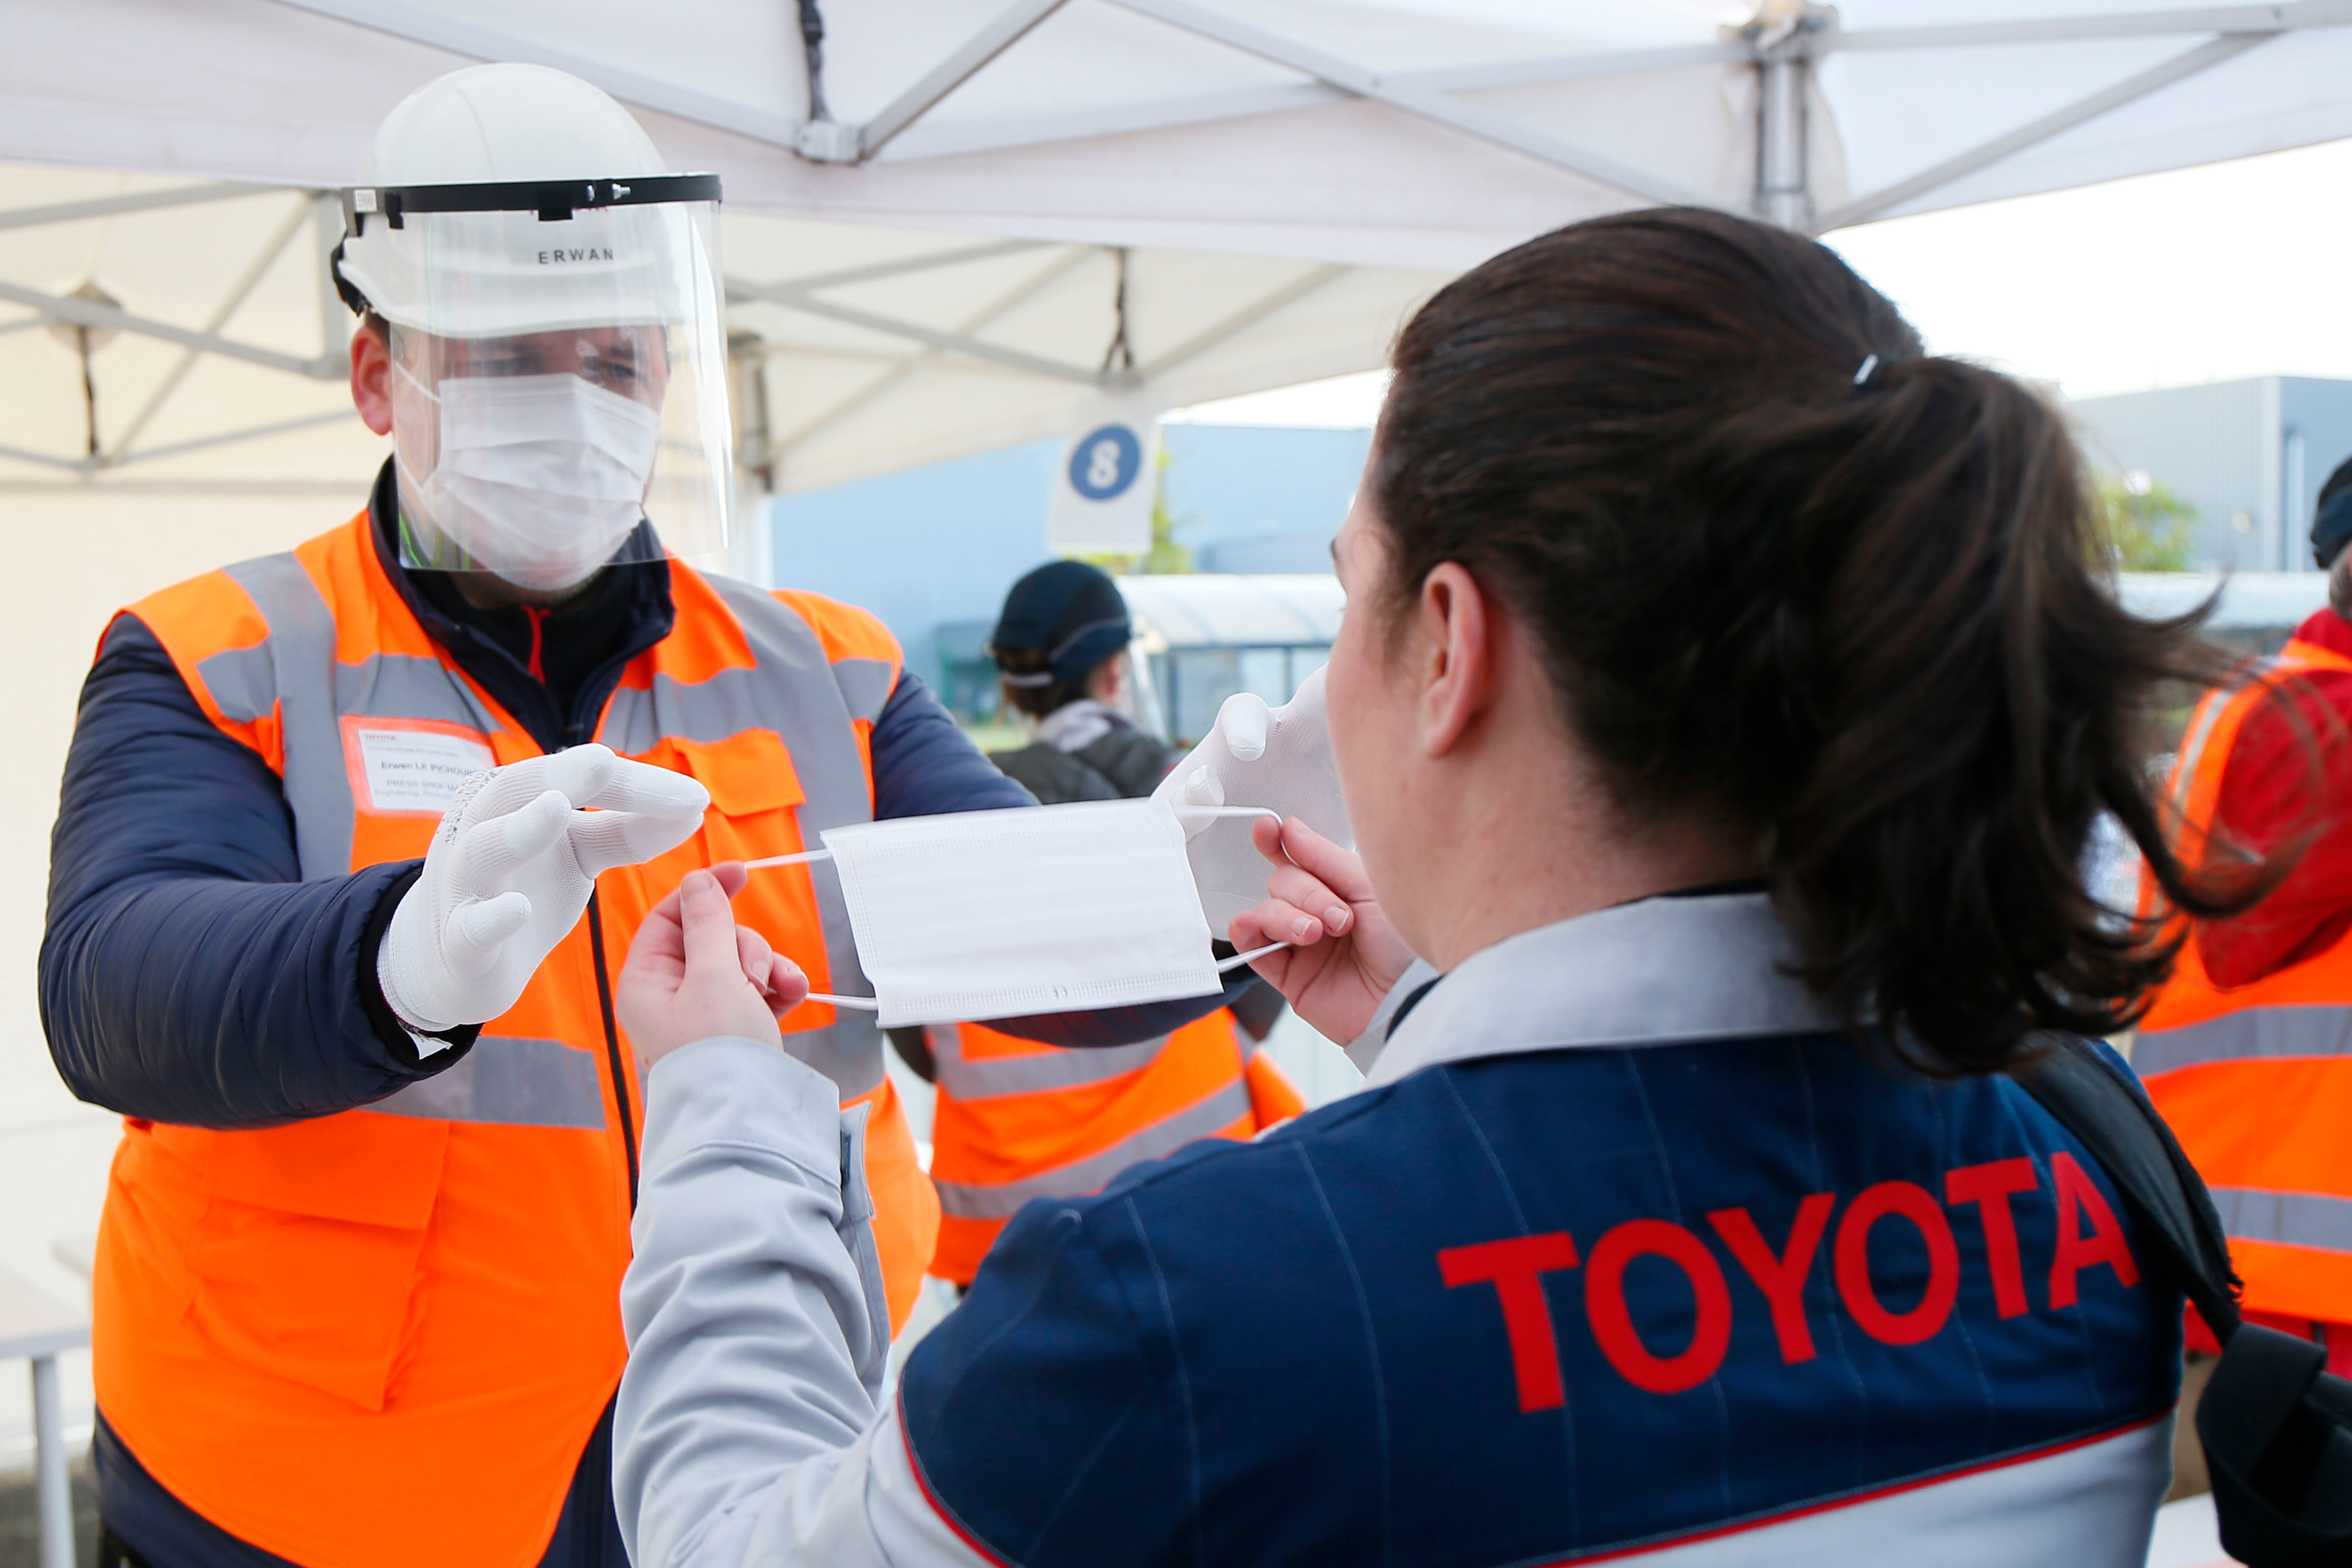 As workers return to Toyota's factory in Onnaing, northern France, they are being instructed on ways to protect themselves from infection in the workplace. Here, an employee hands over a protective mask to a worker while telling her how to use it. (AP)